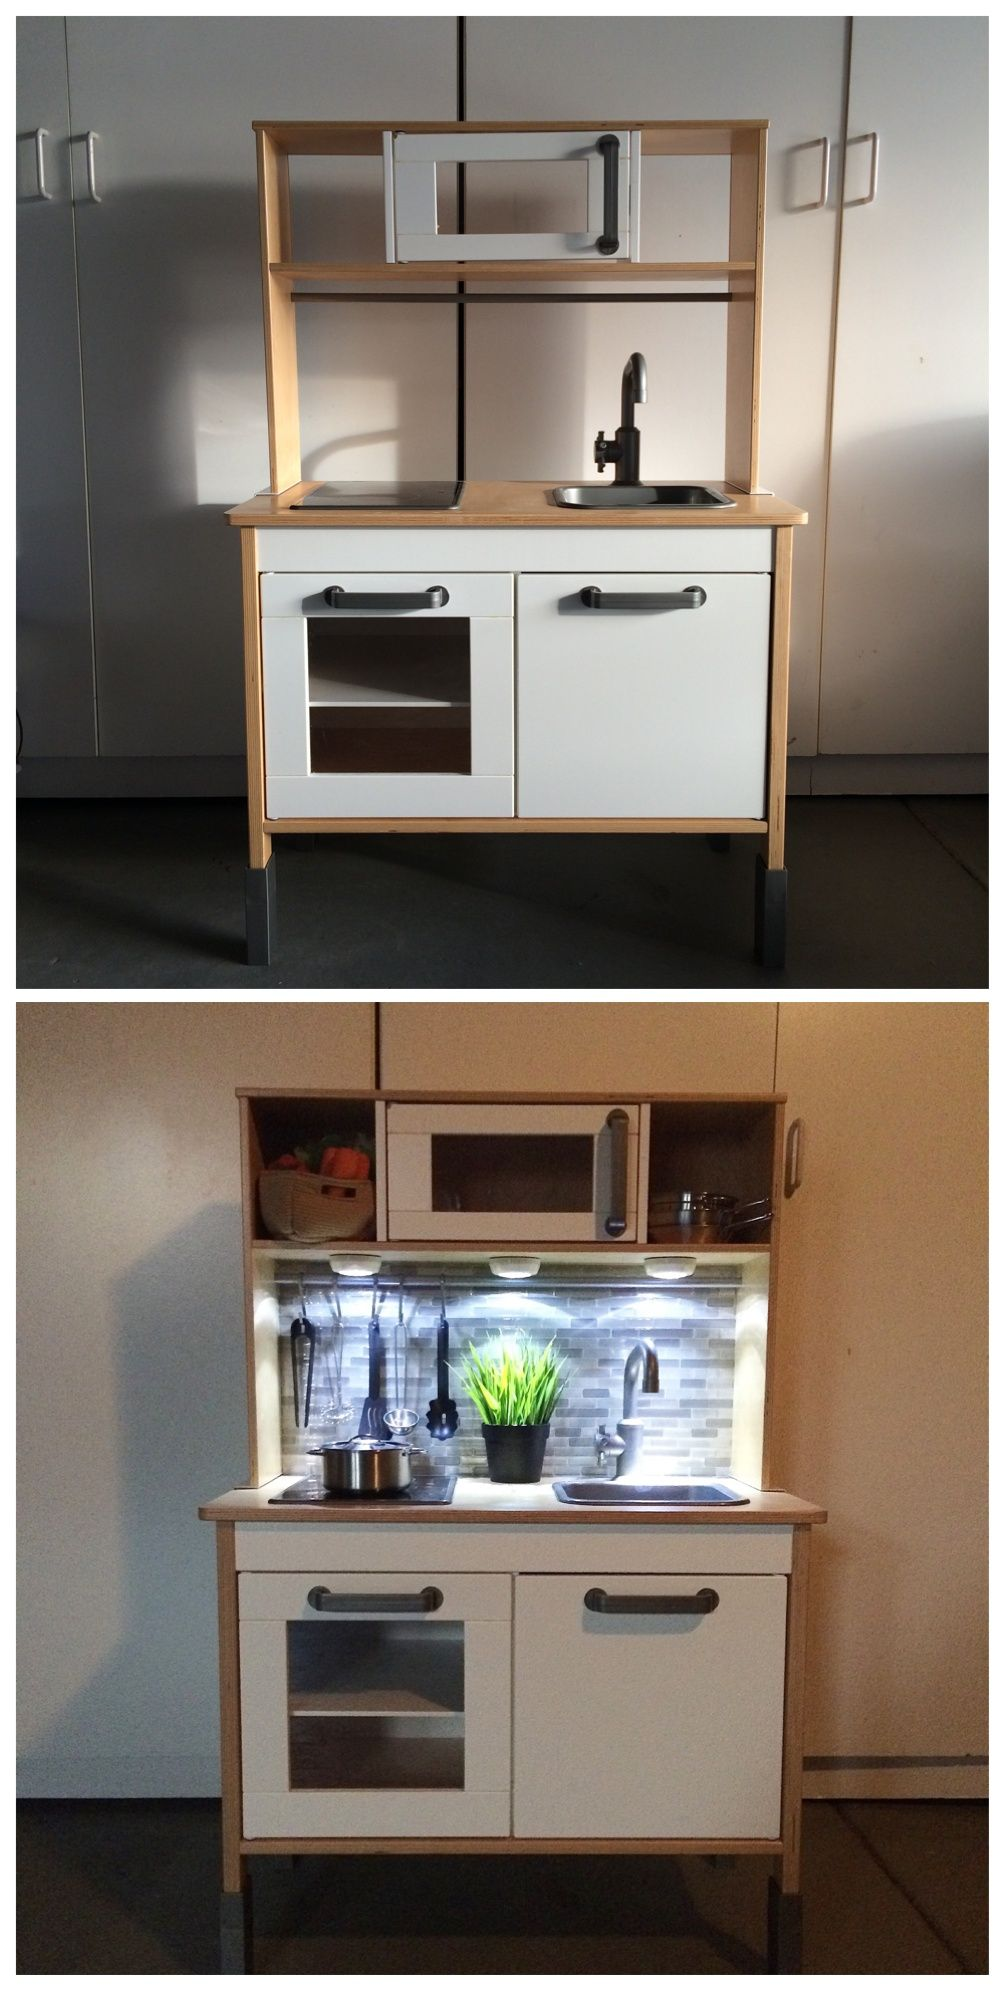 Ikea Duktig kitchen b&A Ikea kids kitchen